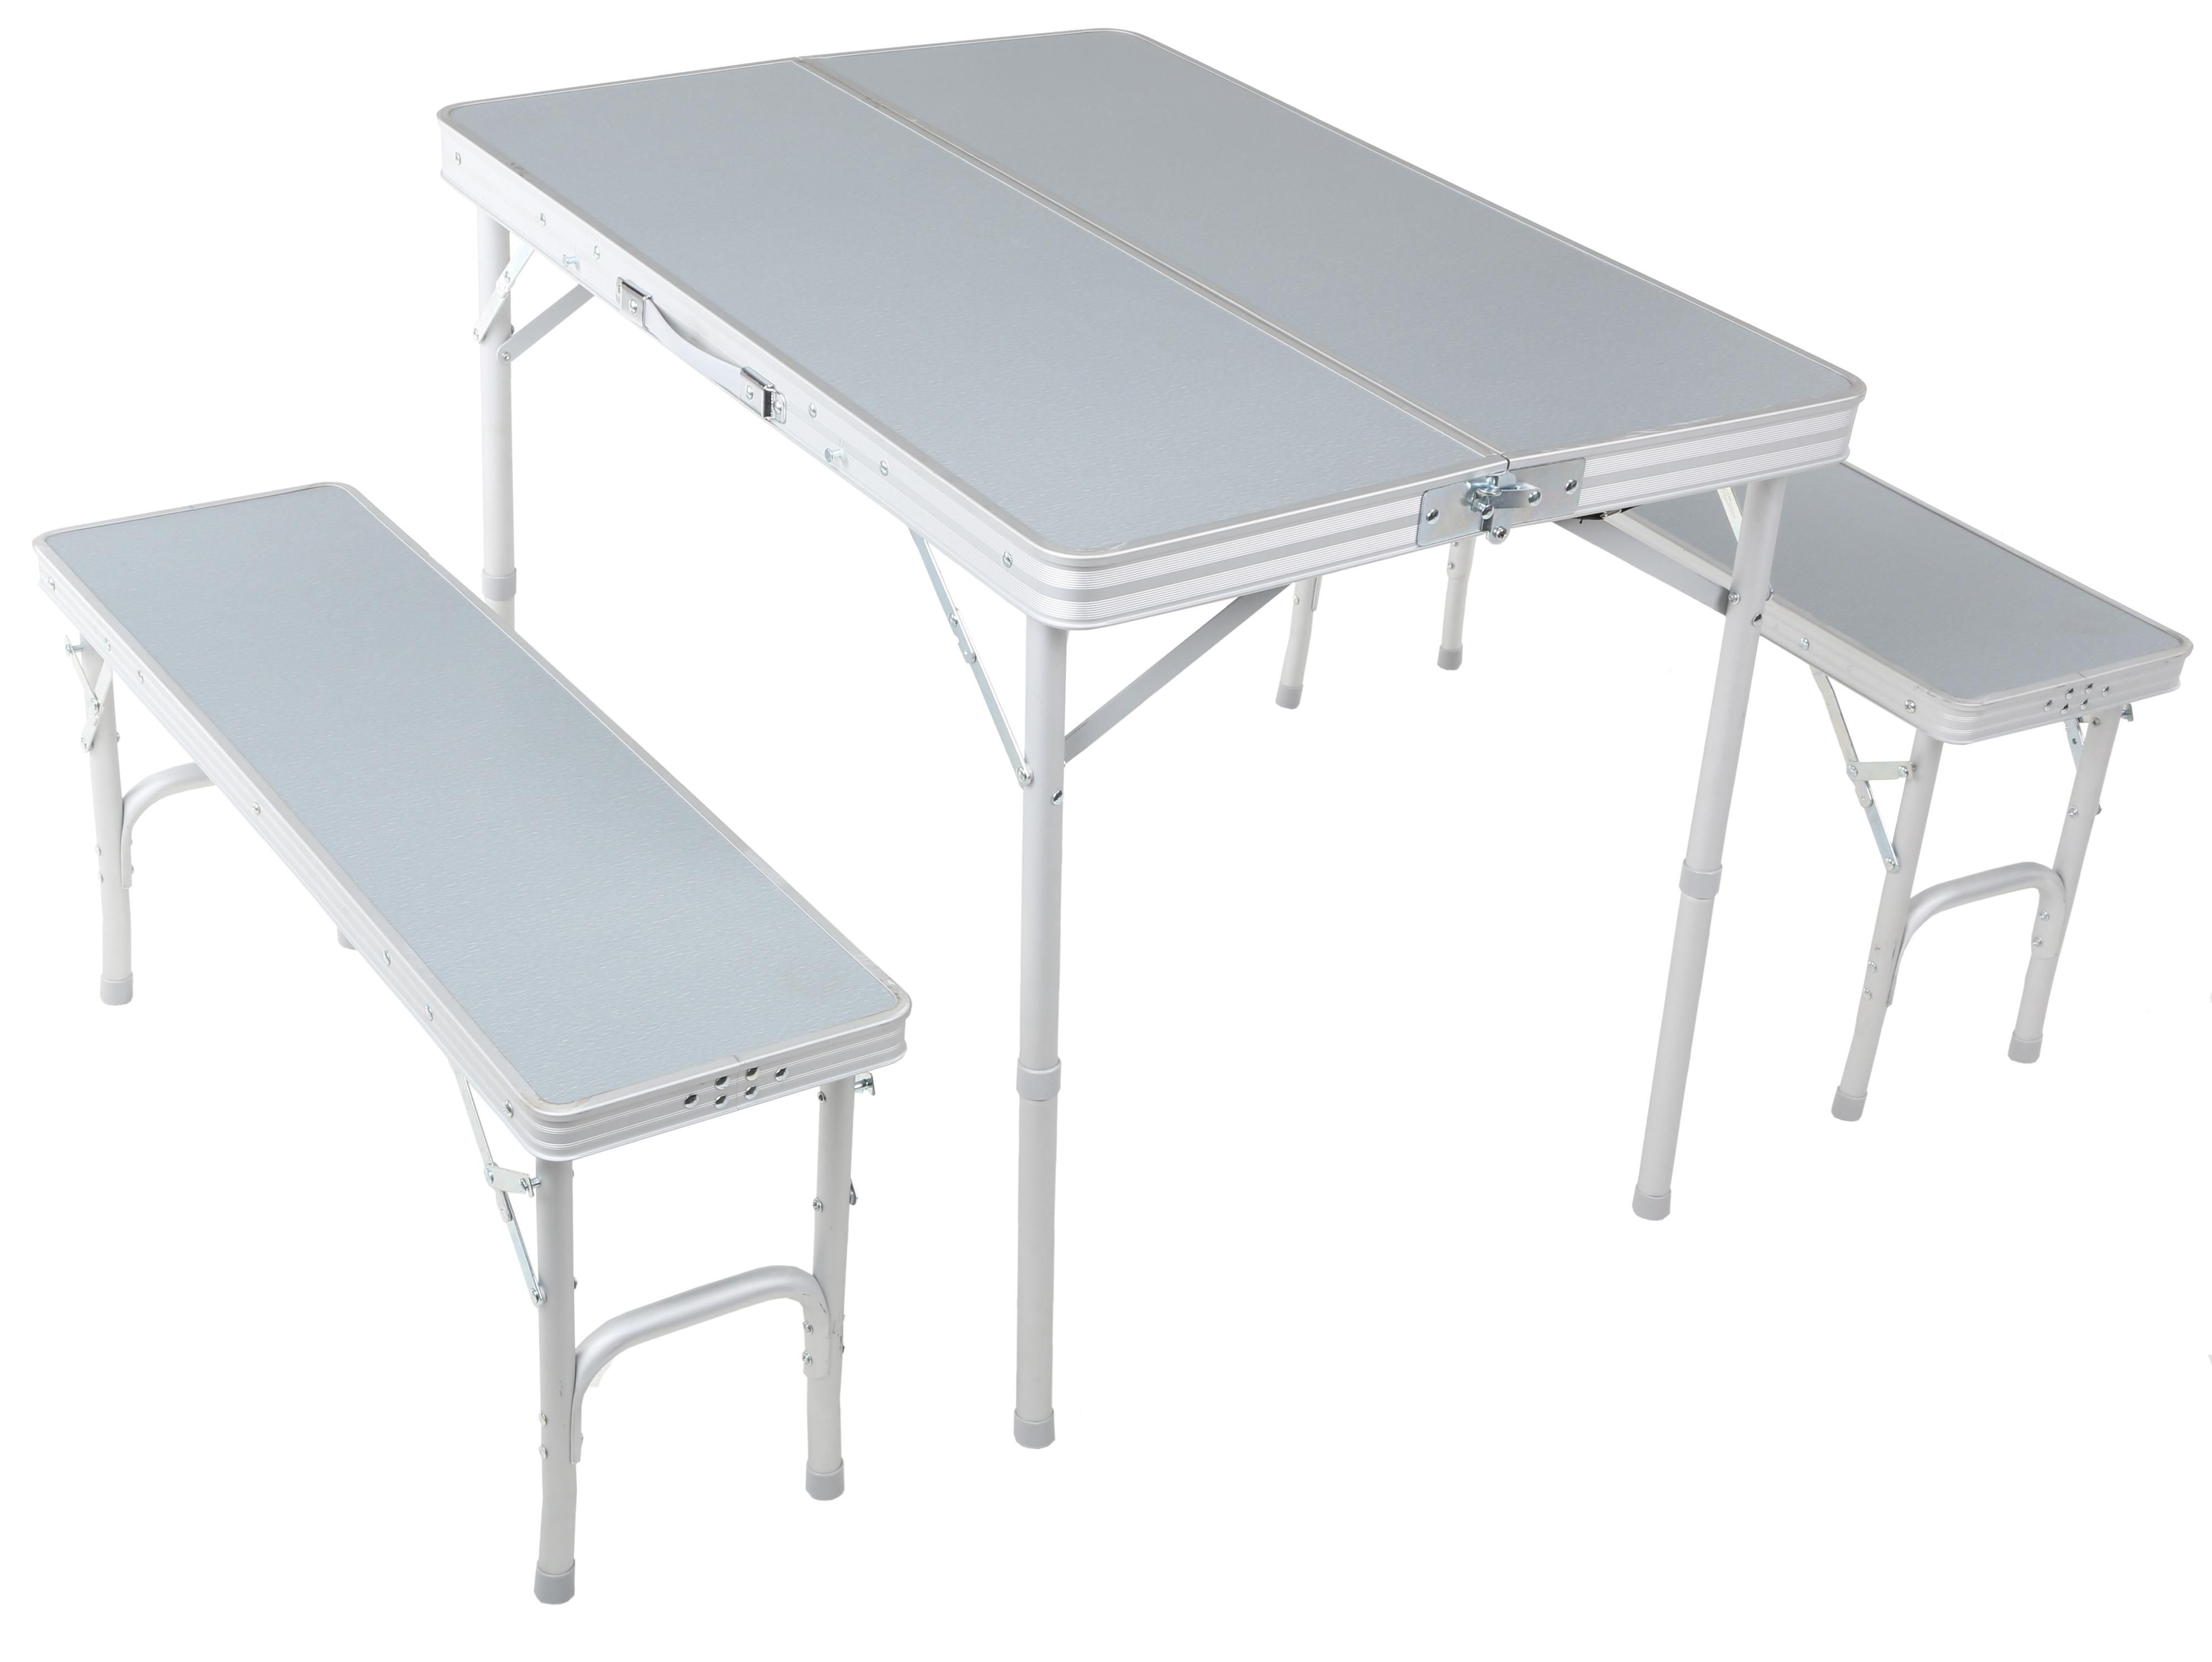 Urban escape folding table and bench set folds down into a single carry case